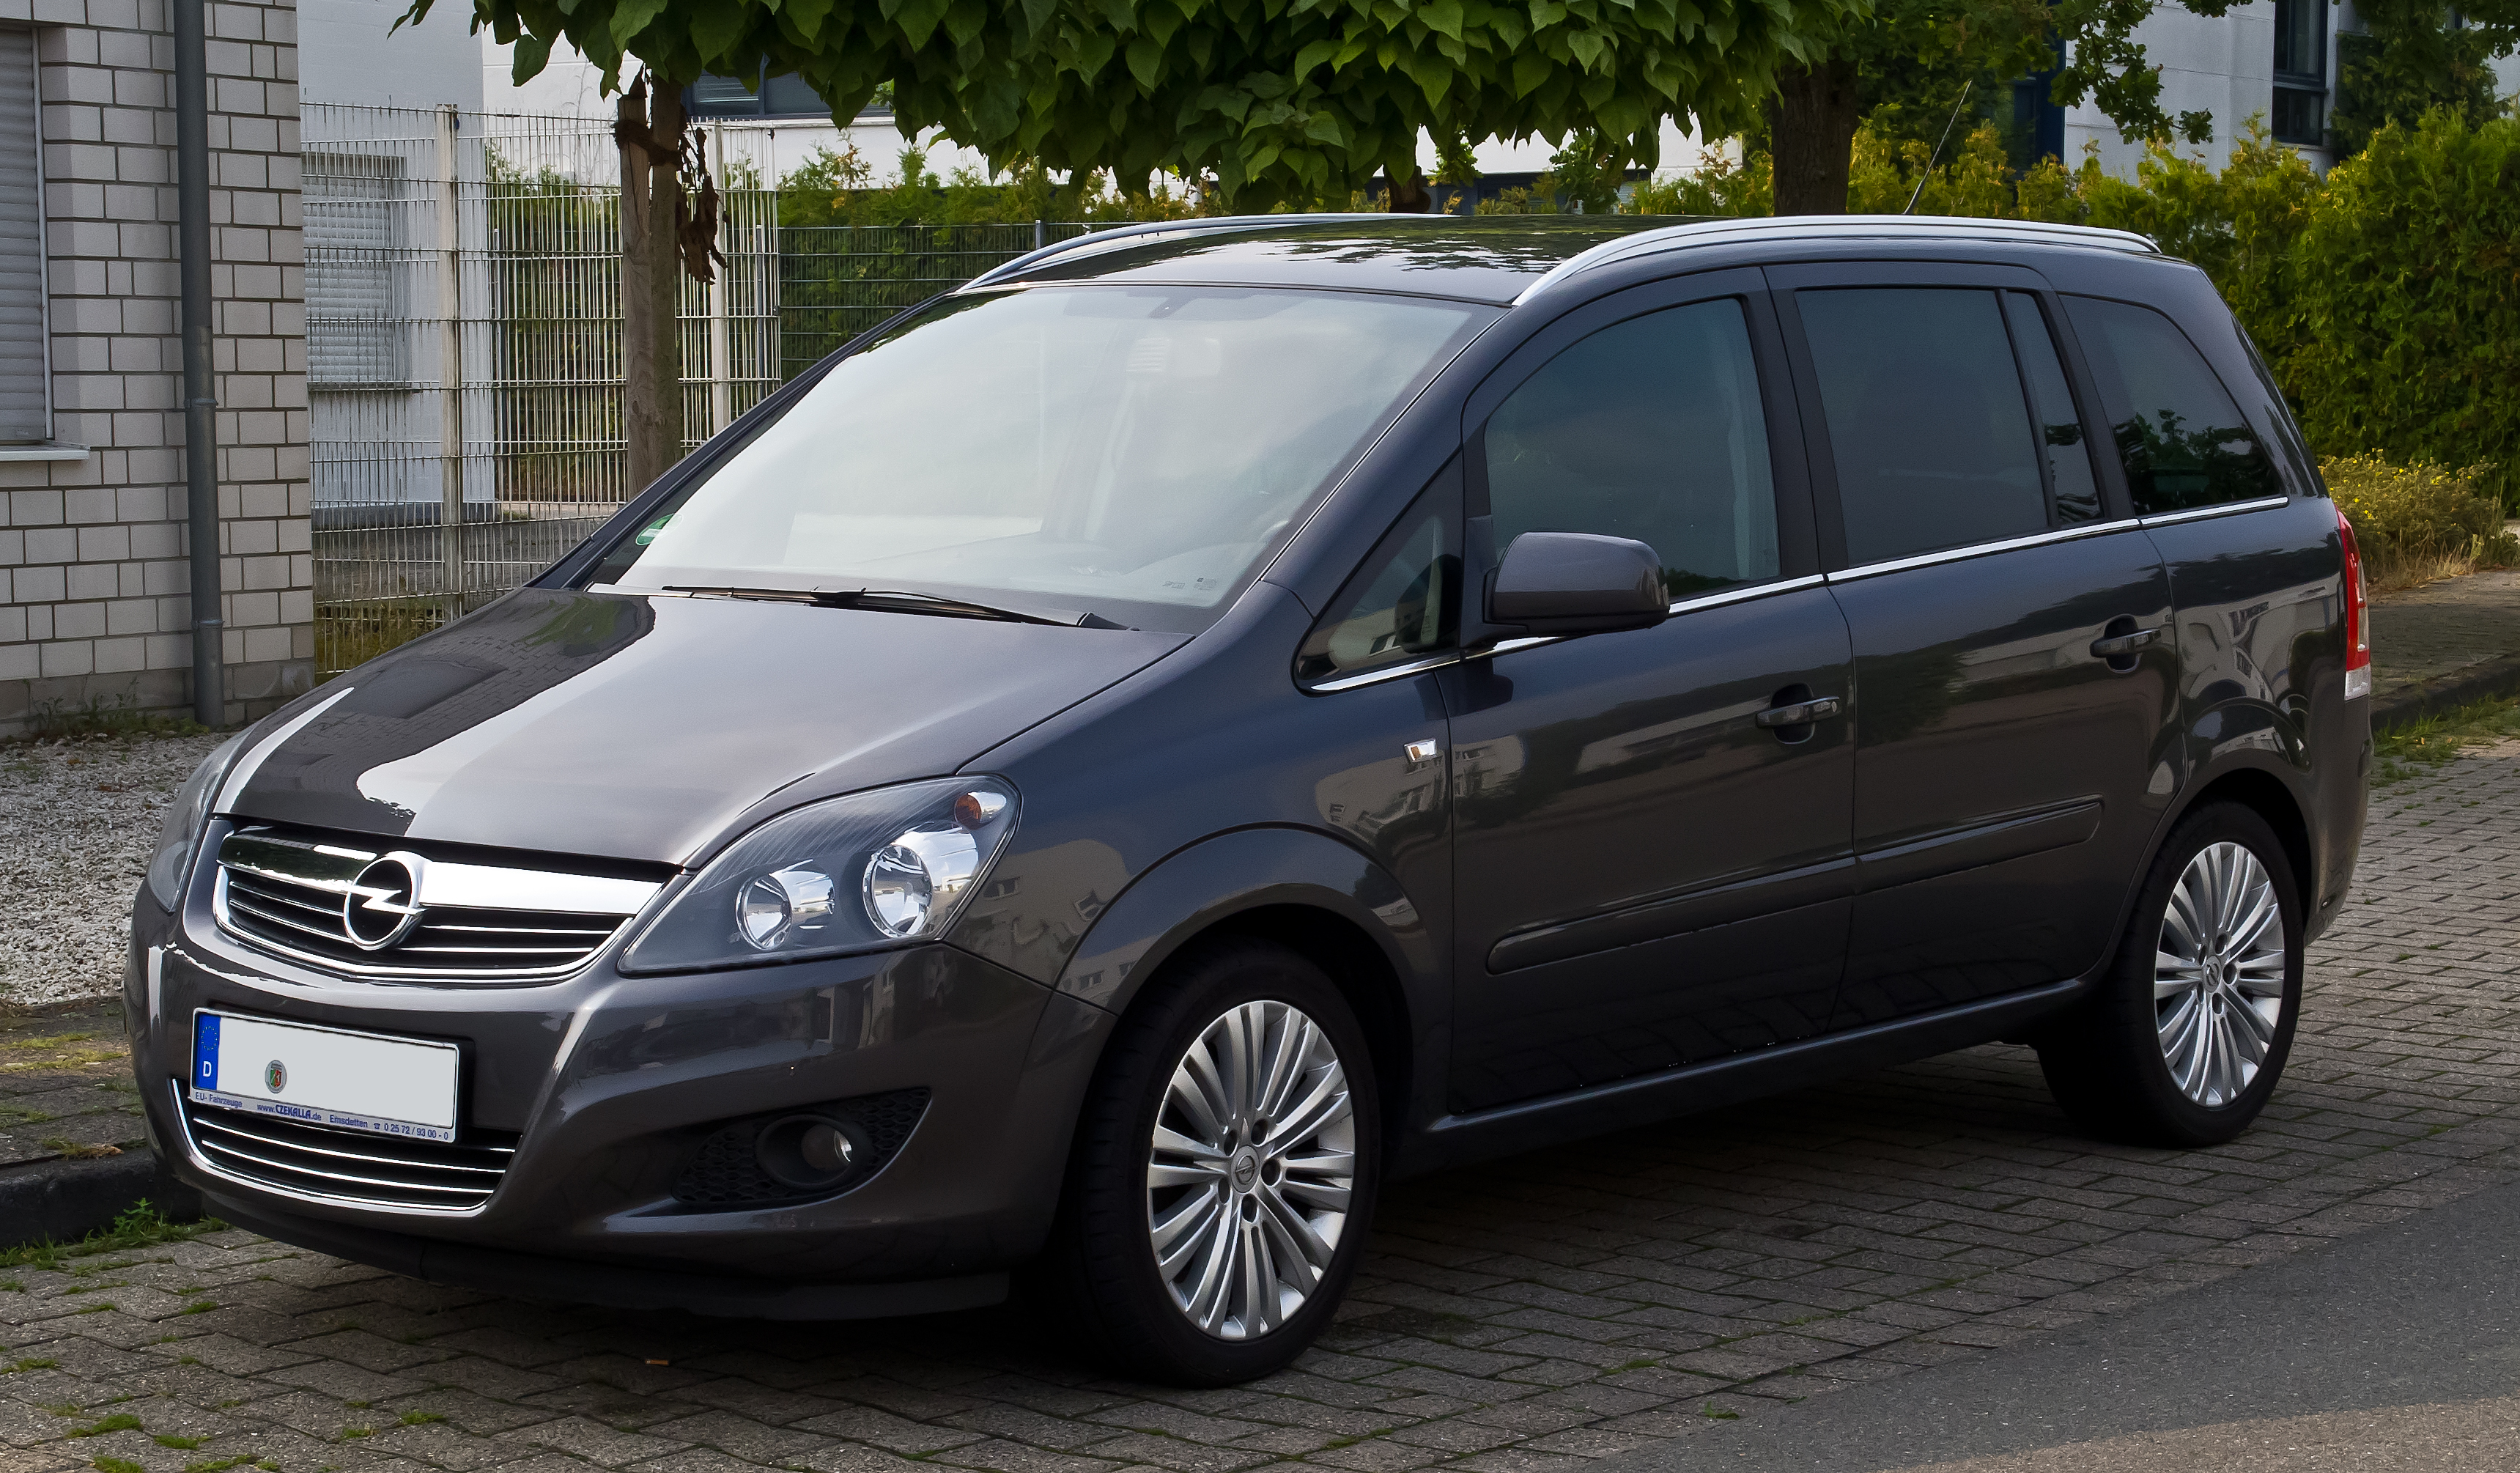 file opel zafira b facelift frontansicht 7 september 2013 m wikimedia commons. Black Bedroom Furniture Sets. Home Design Ideas